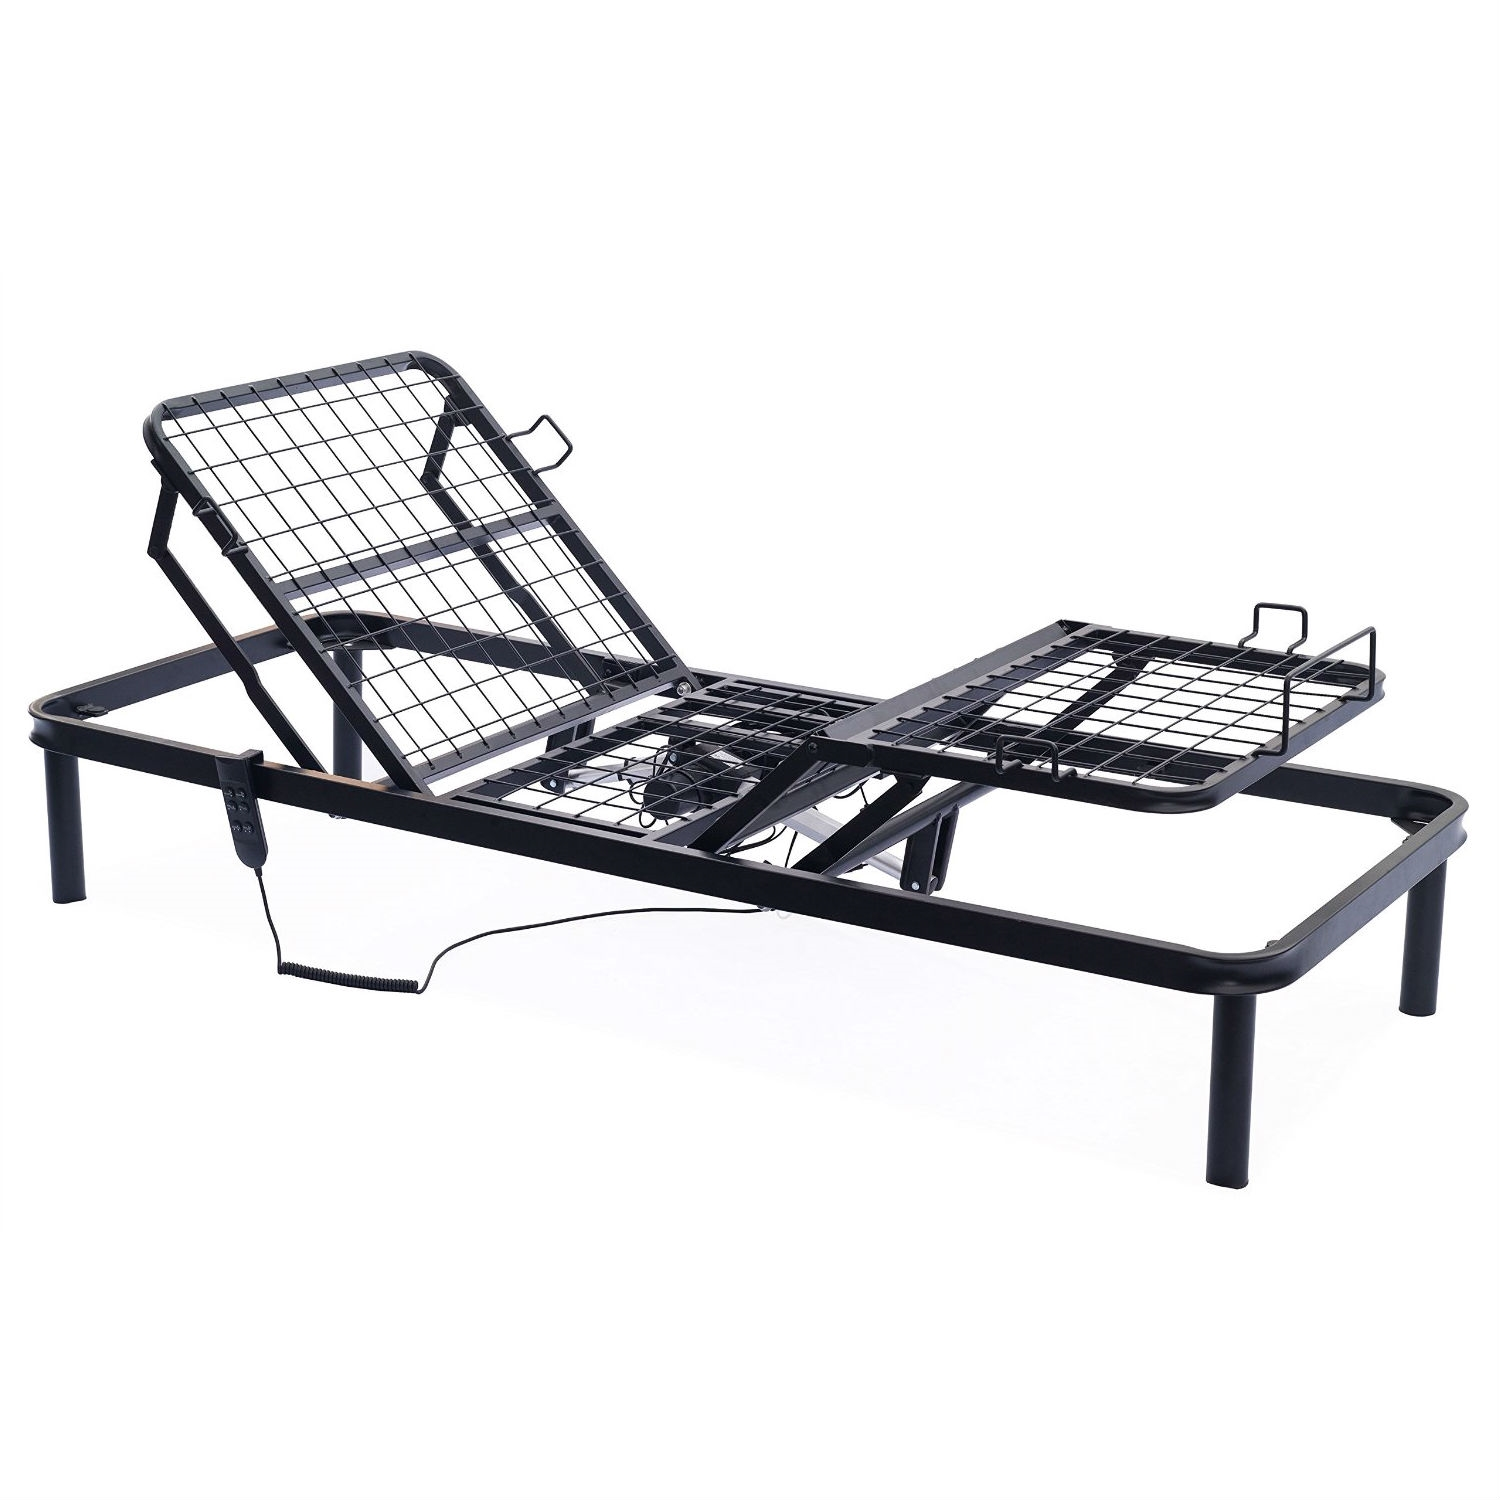 Twin XL Metal Adjustable Bed Frame with Remote | FastFurnishings.com